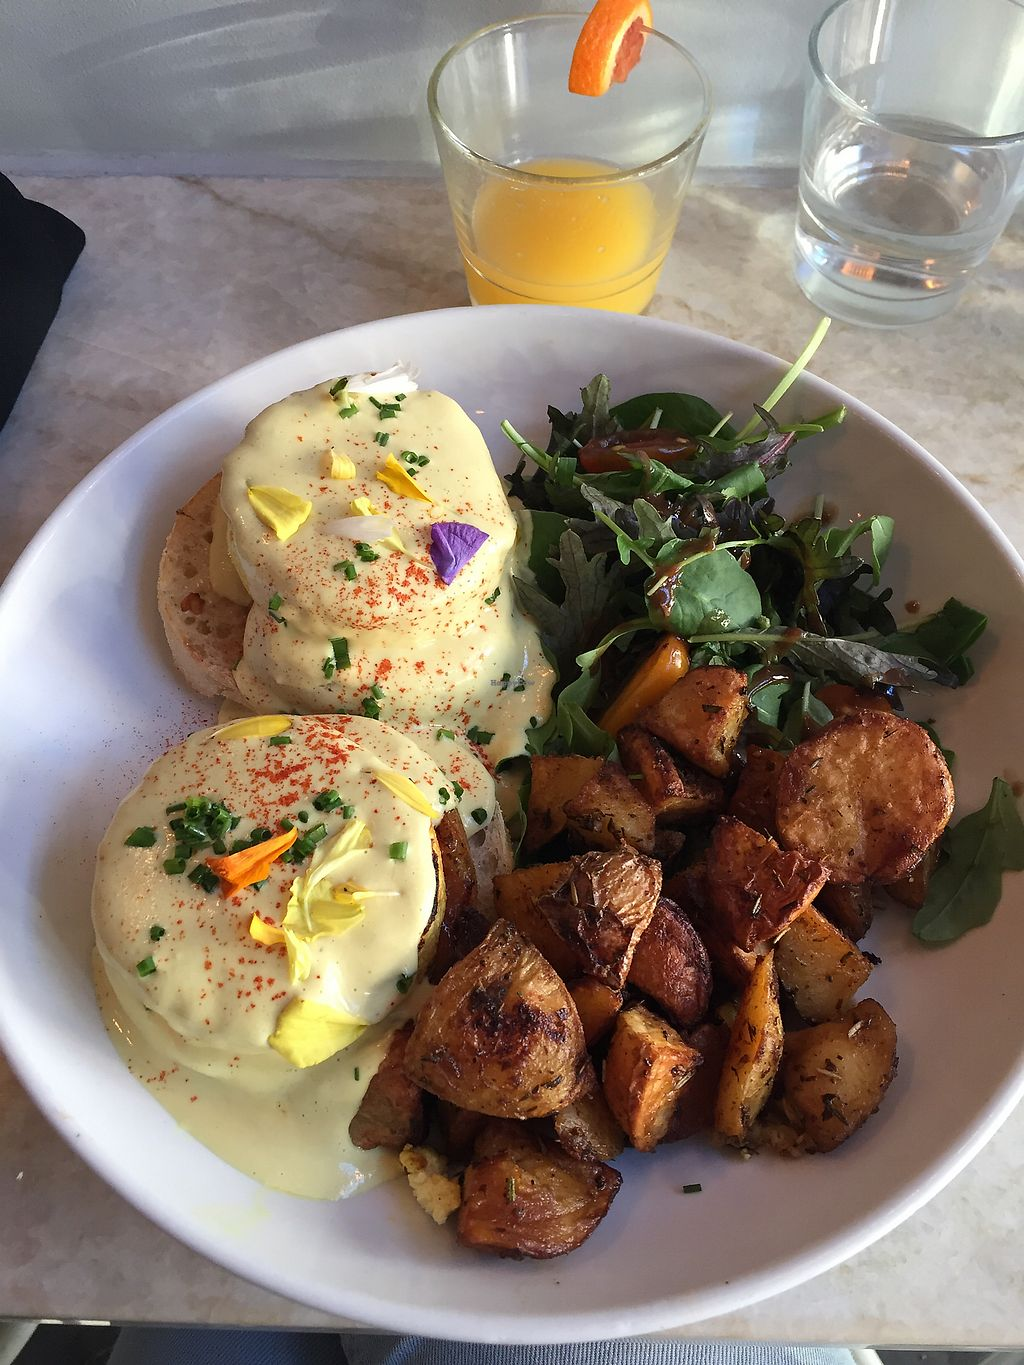 """Photo of Modern Love Brooklyn  by <a href=""""/members/profile/drstina"""">drstina</a> <br/>Tofu Benedict <br/> November 20, 2017  - <a href='/contact/abuse/image/79835/327383'>Report</a>"""